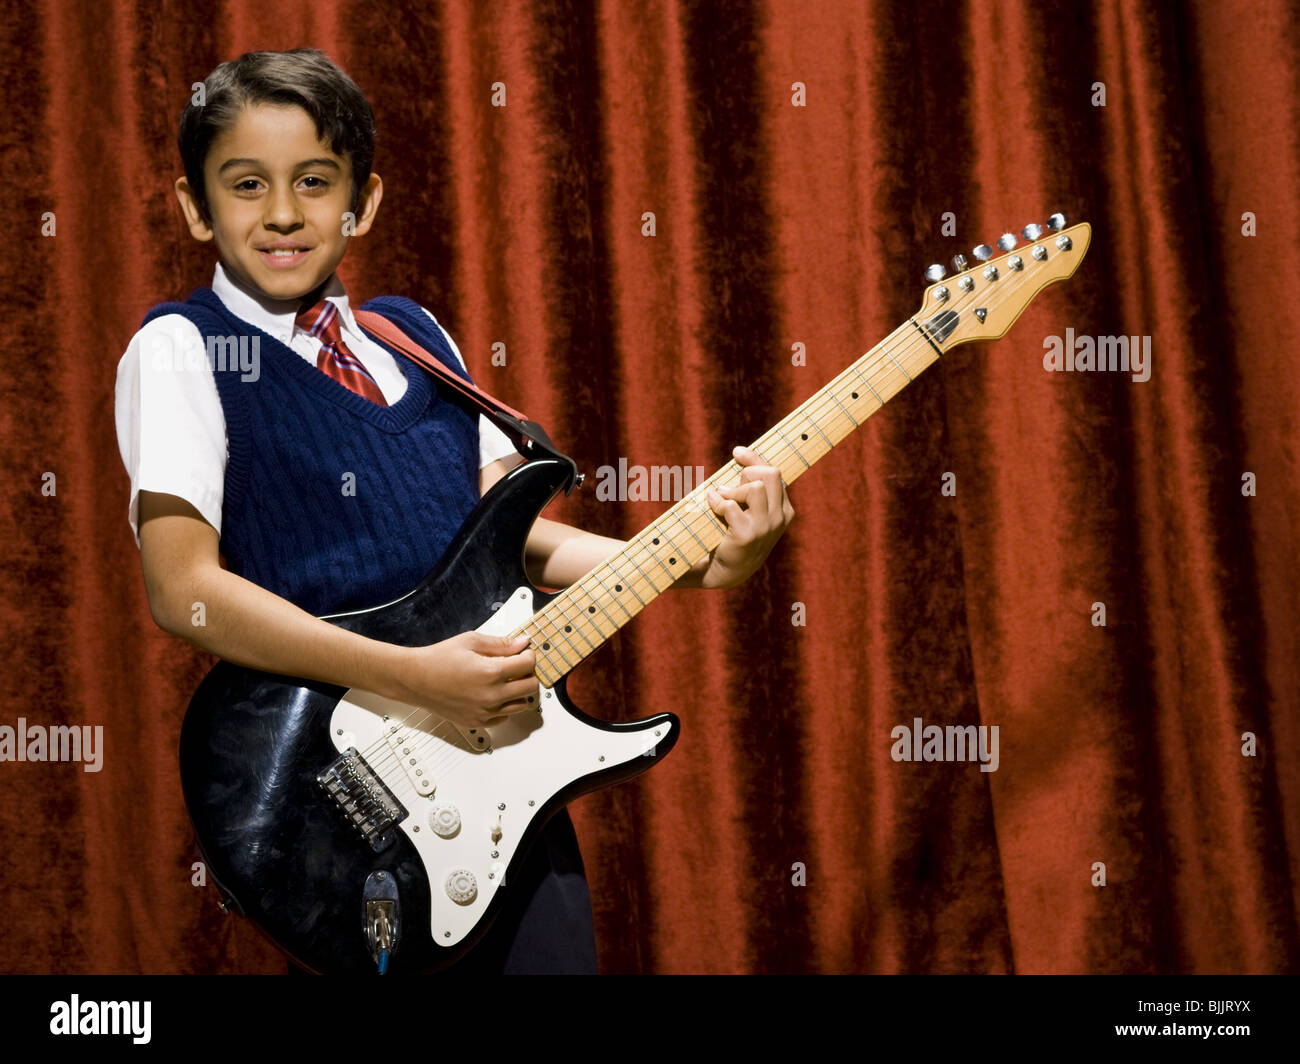 Boy on stage playing electric guitar - Stock Image